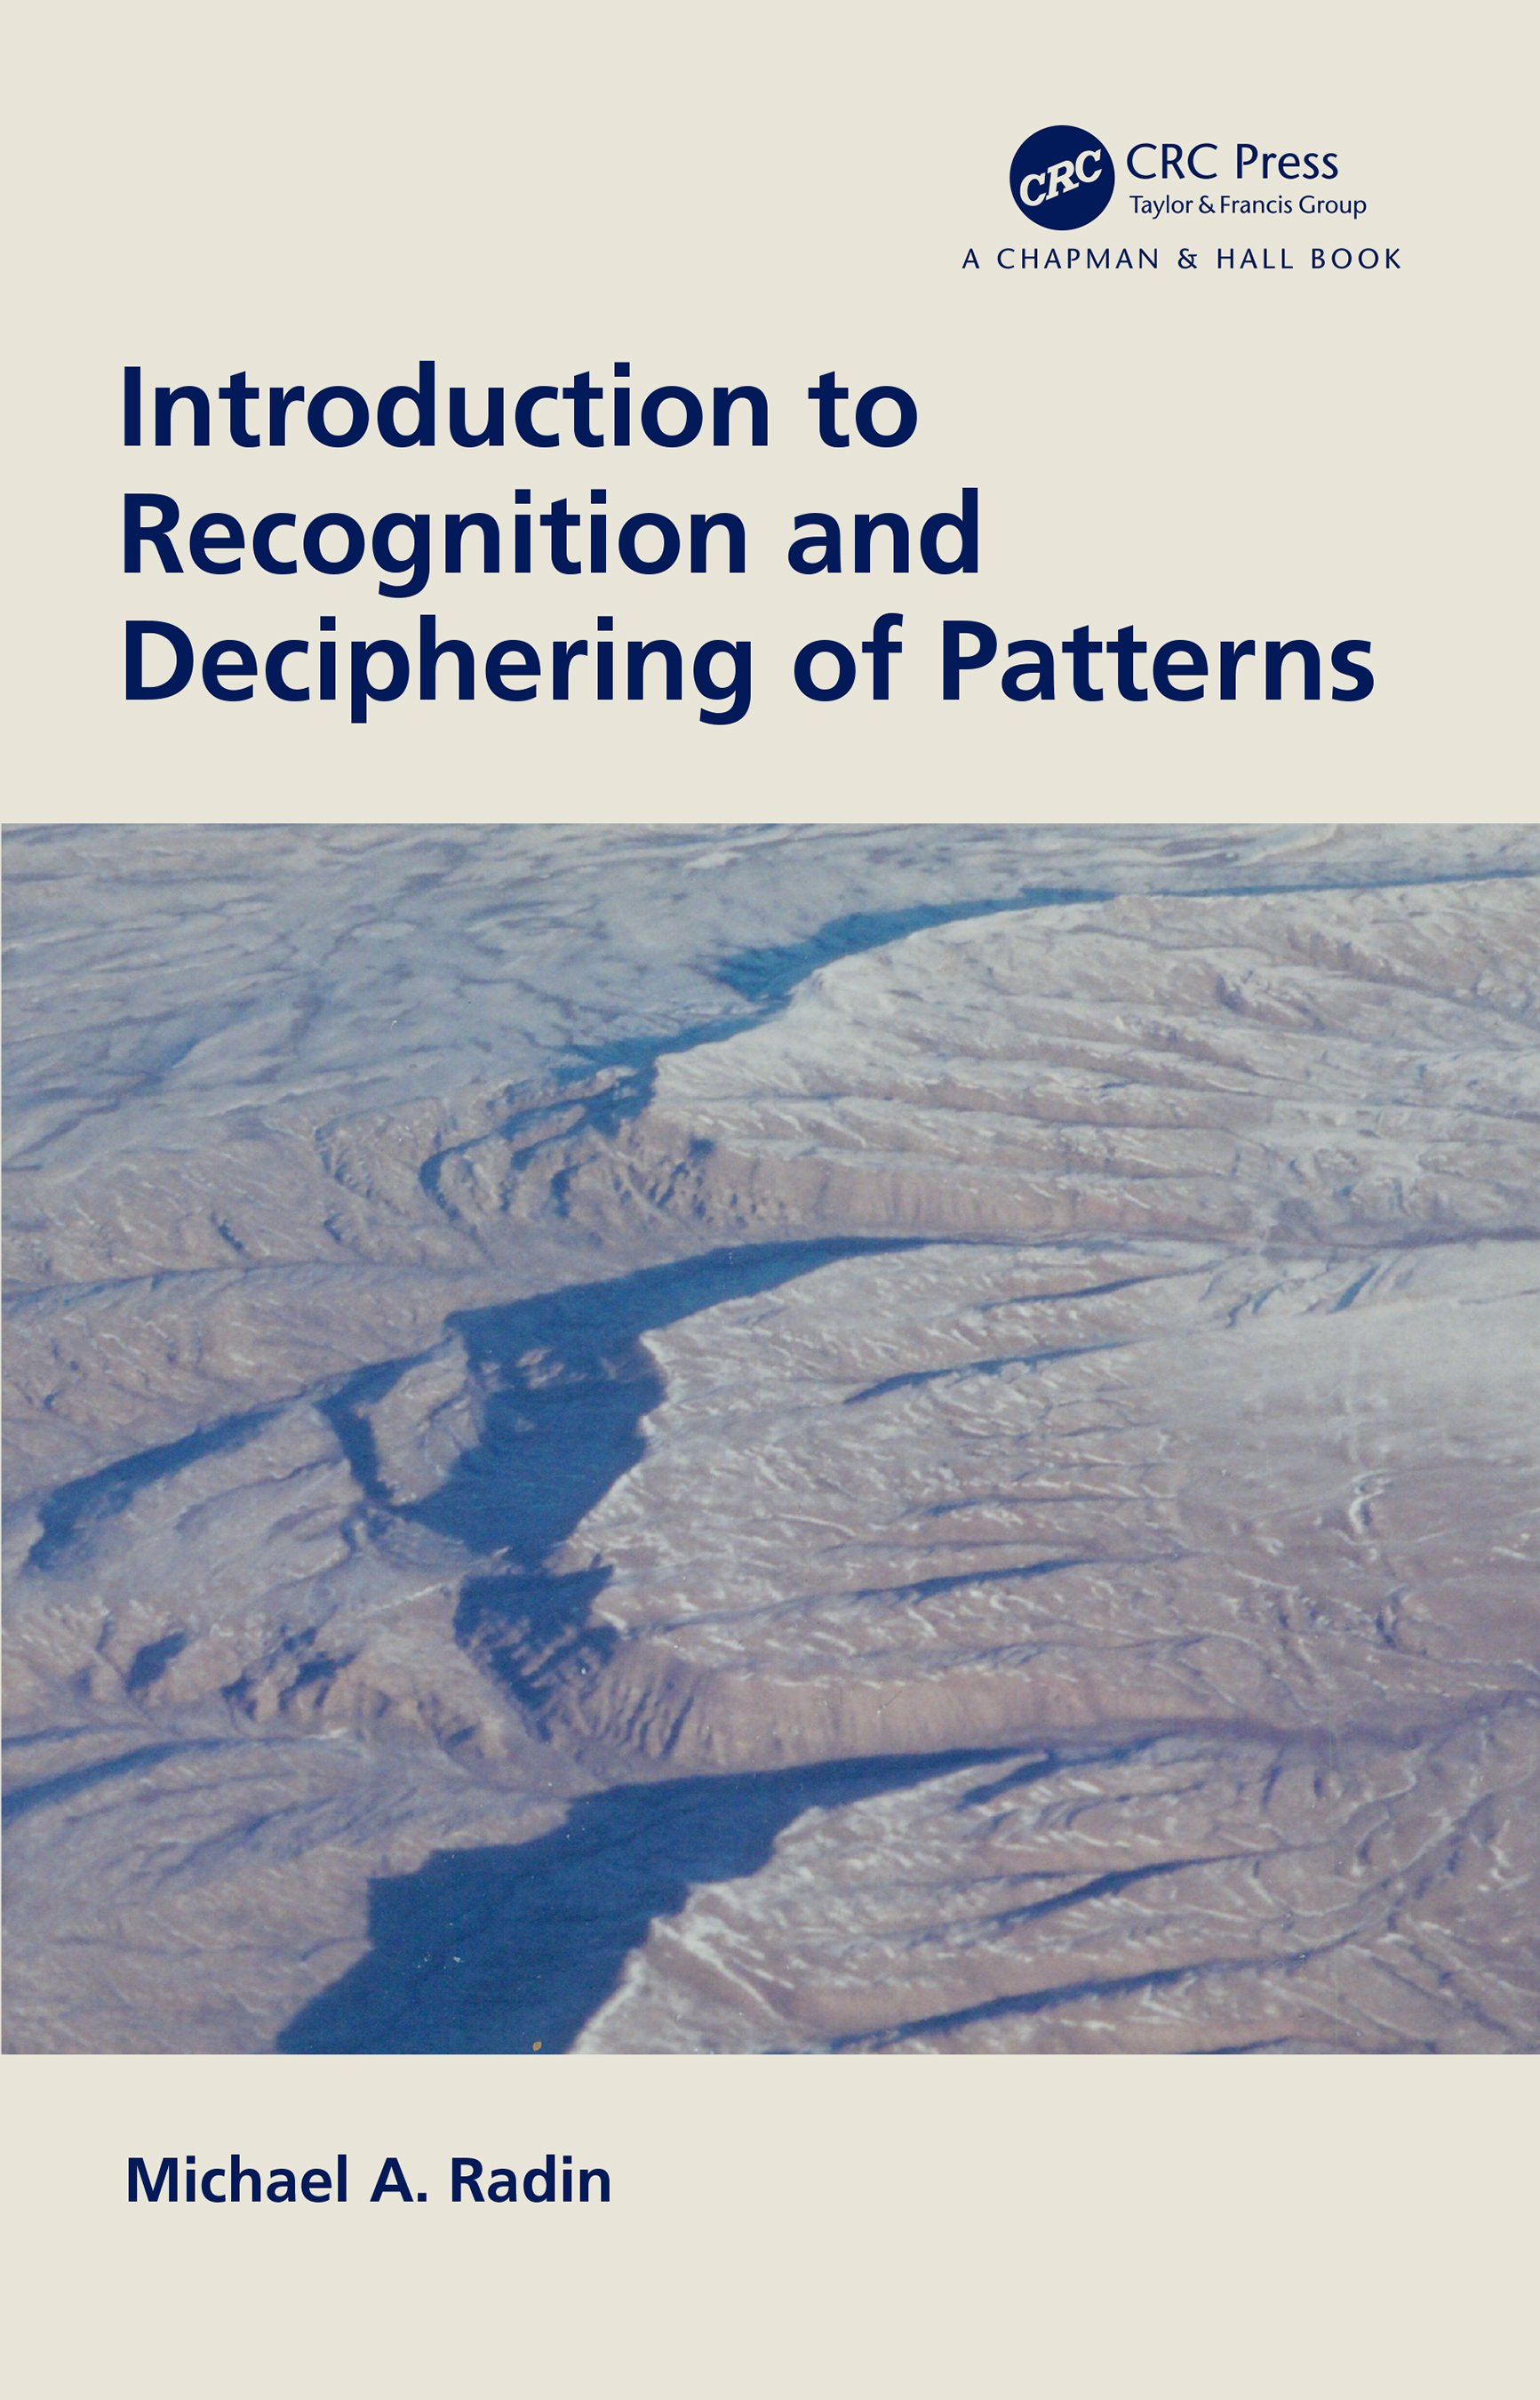 Introduction to Recognition and Deciphering of Patterns